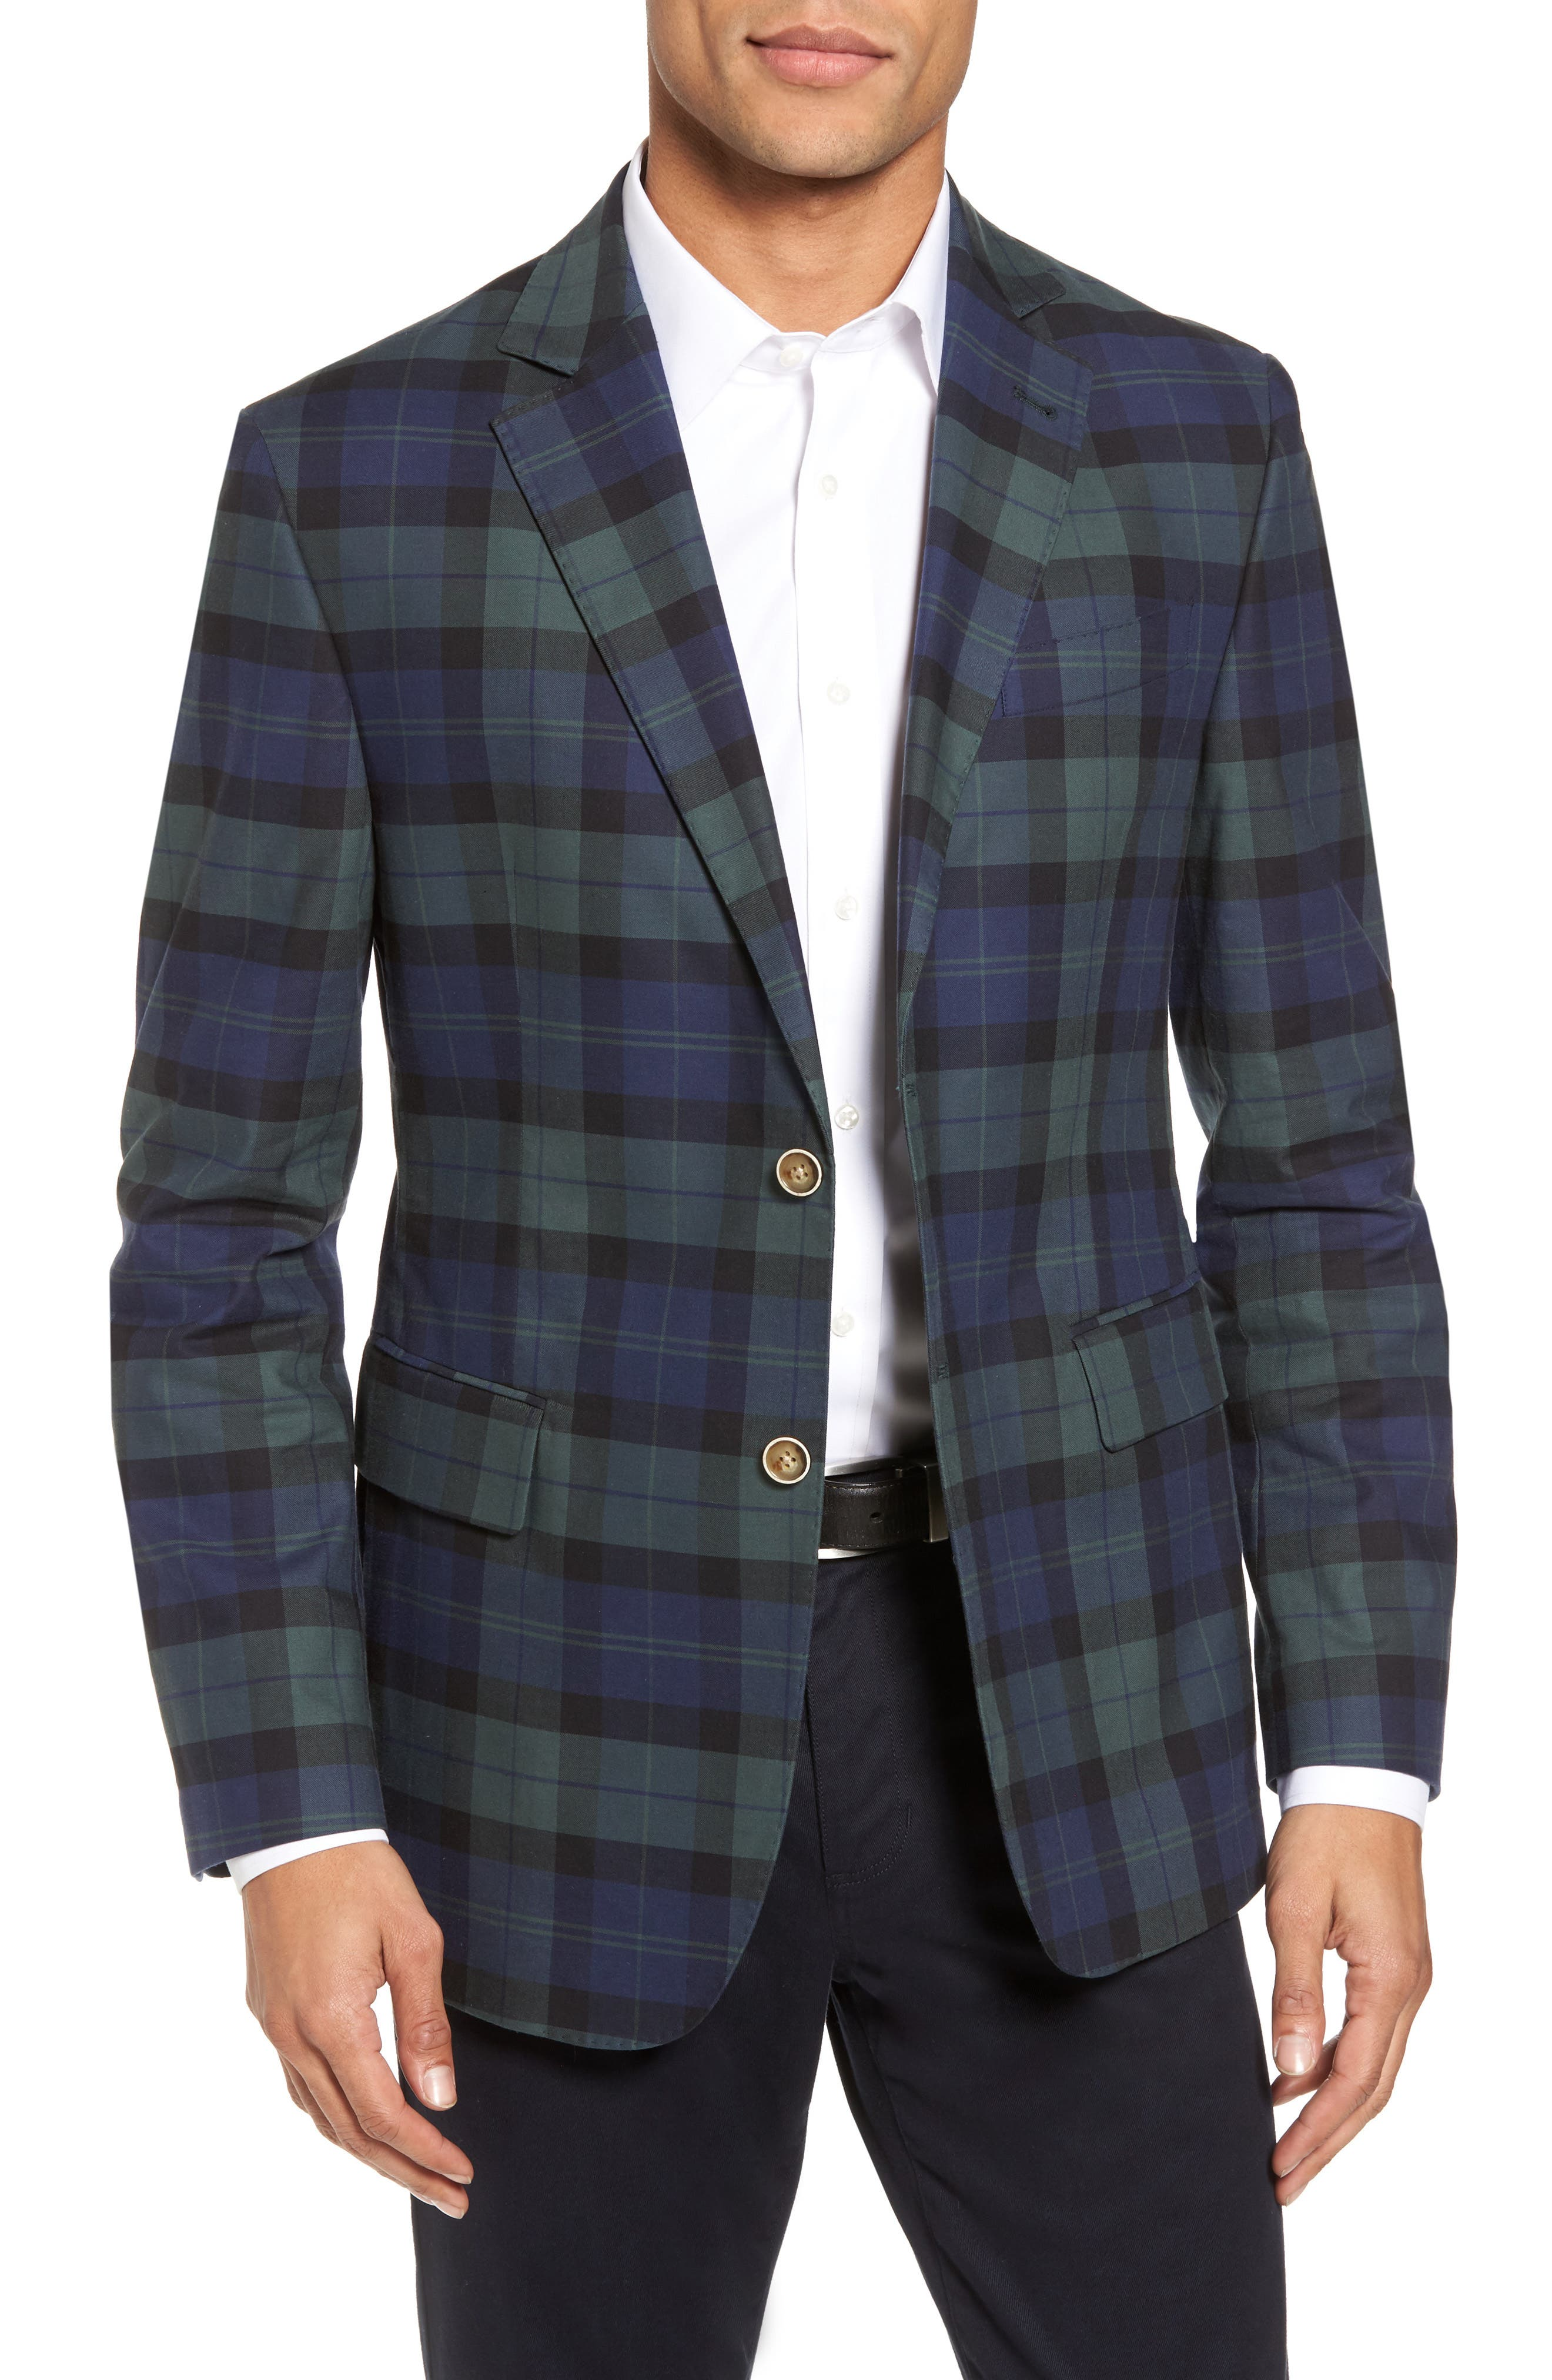 Alternate Image 1 Selected - vineyard vines Classic Fit Blackwatch Plaid Sport Coat